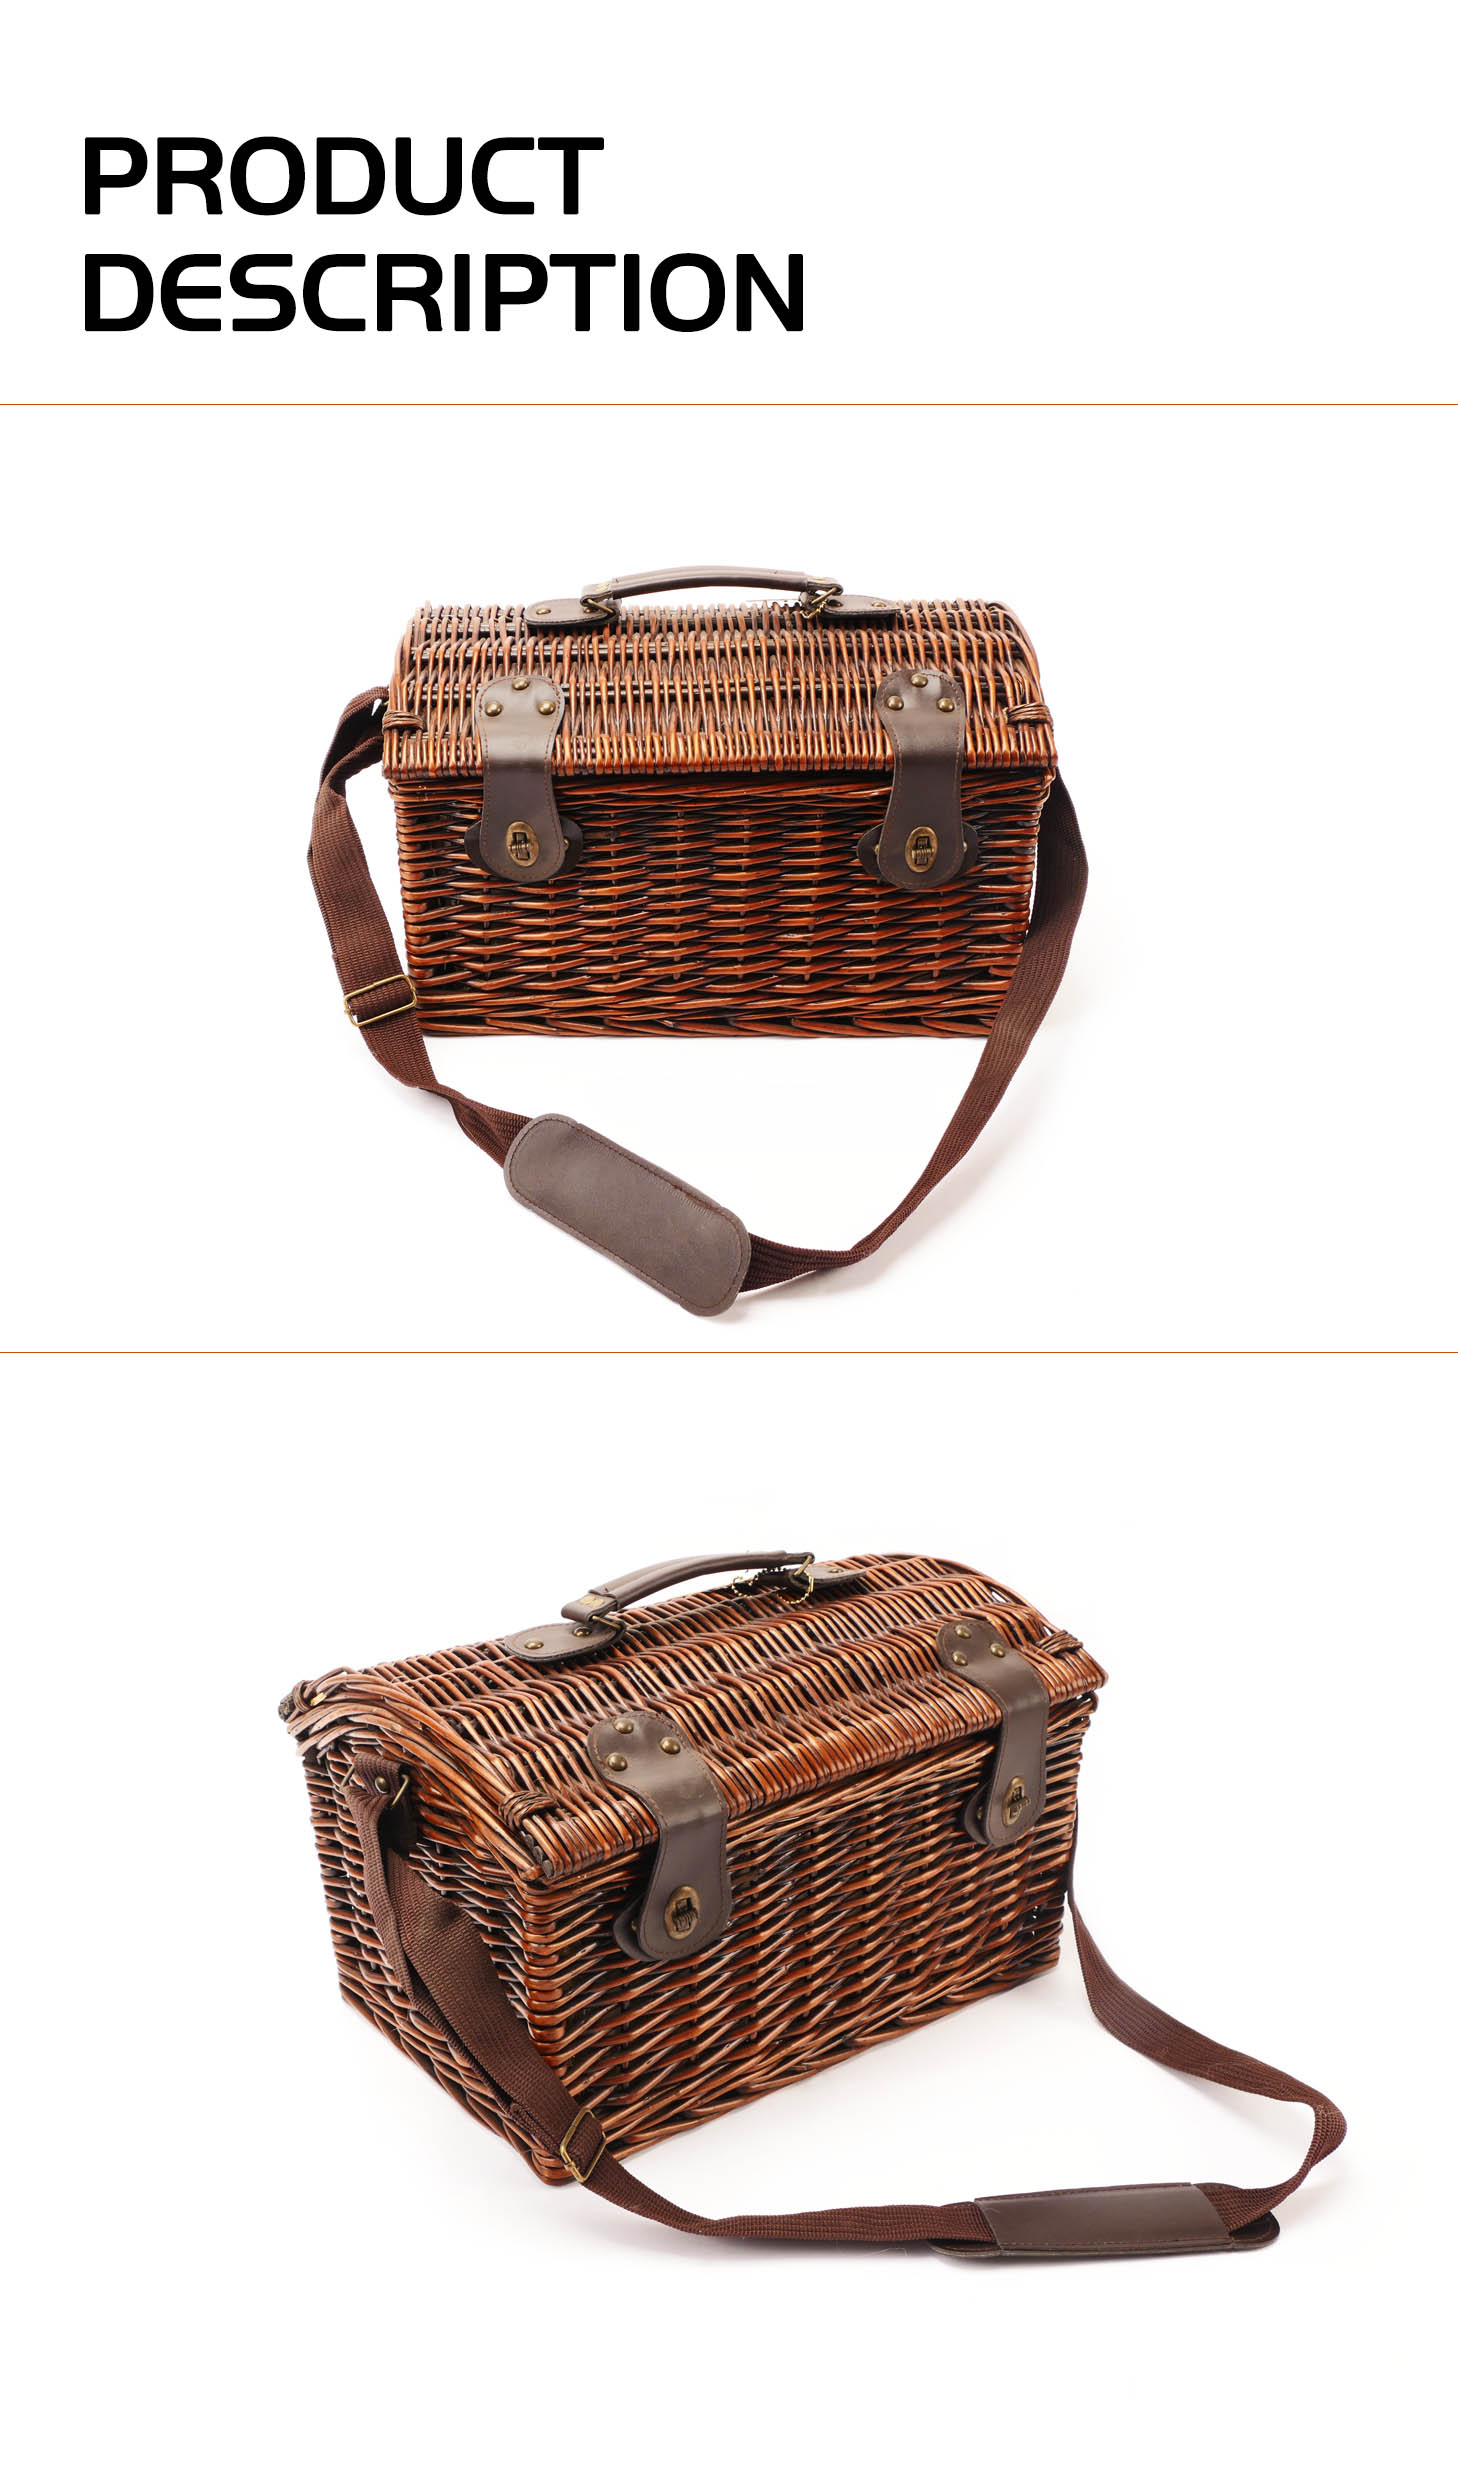 OEM ODM Direct Factory Cheap Brown 4 Person Wicker Picnic Basket with Lid